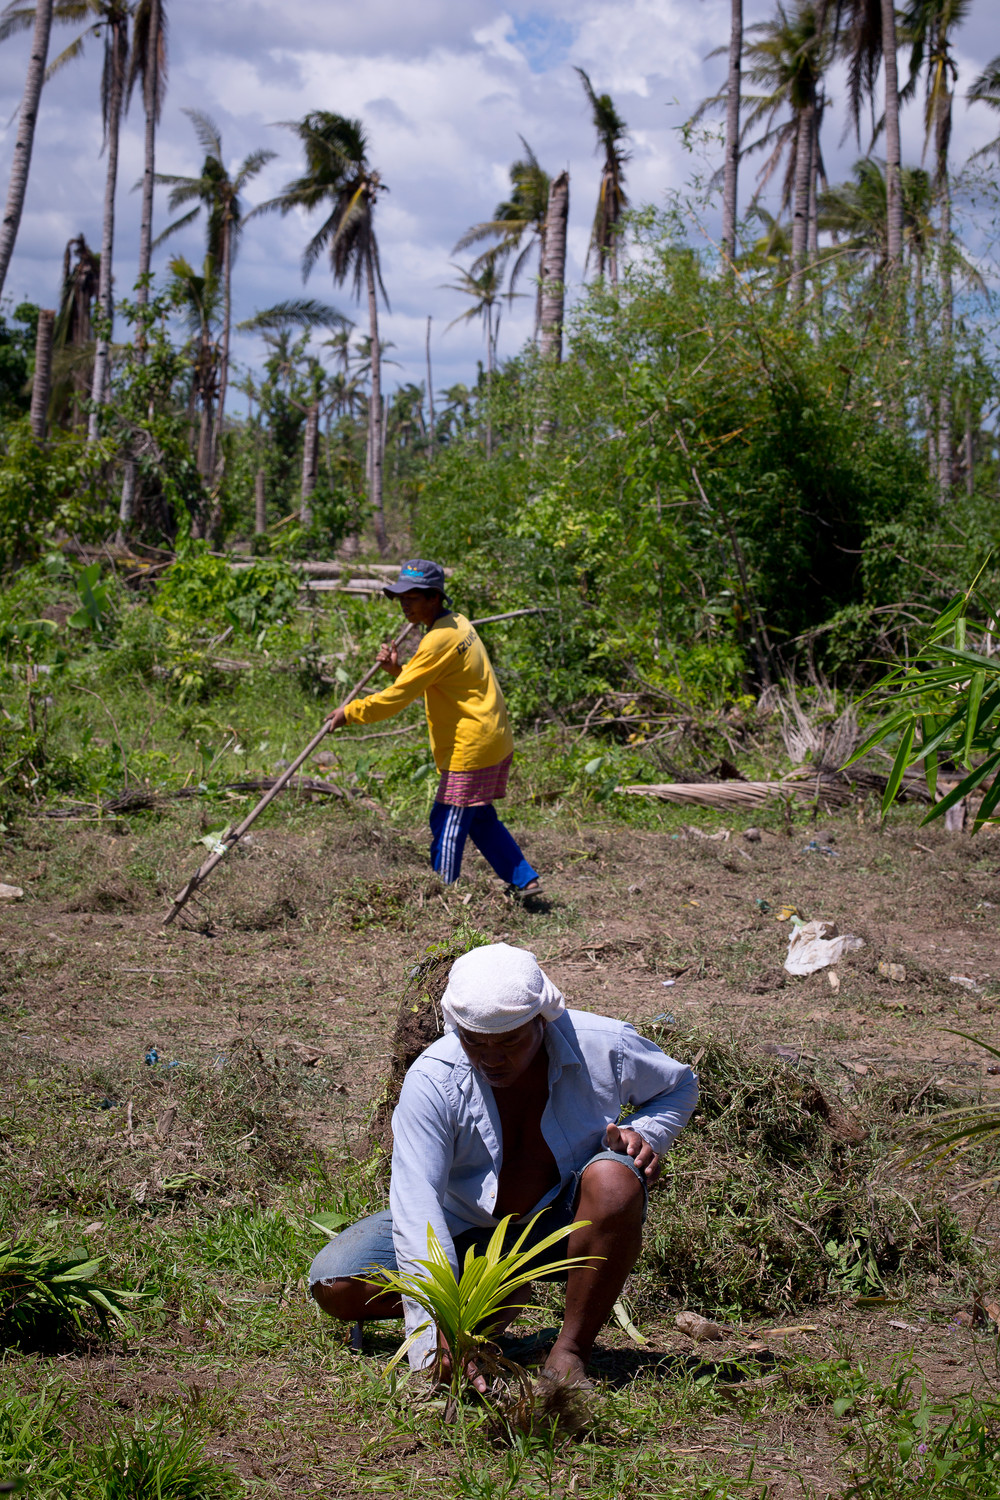 In this 2014 file photo, coconut farmers near Tanauan, Philippines, plant a sapling and clear a field. To date, the social action arm of the Catholic Church has been able to help about 1.8 million people affected by the destruction brought by Typhoon Haiyan that struck the central Philippines in 2013.